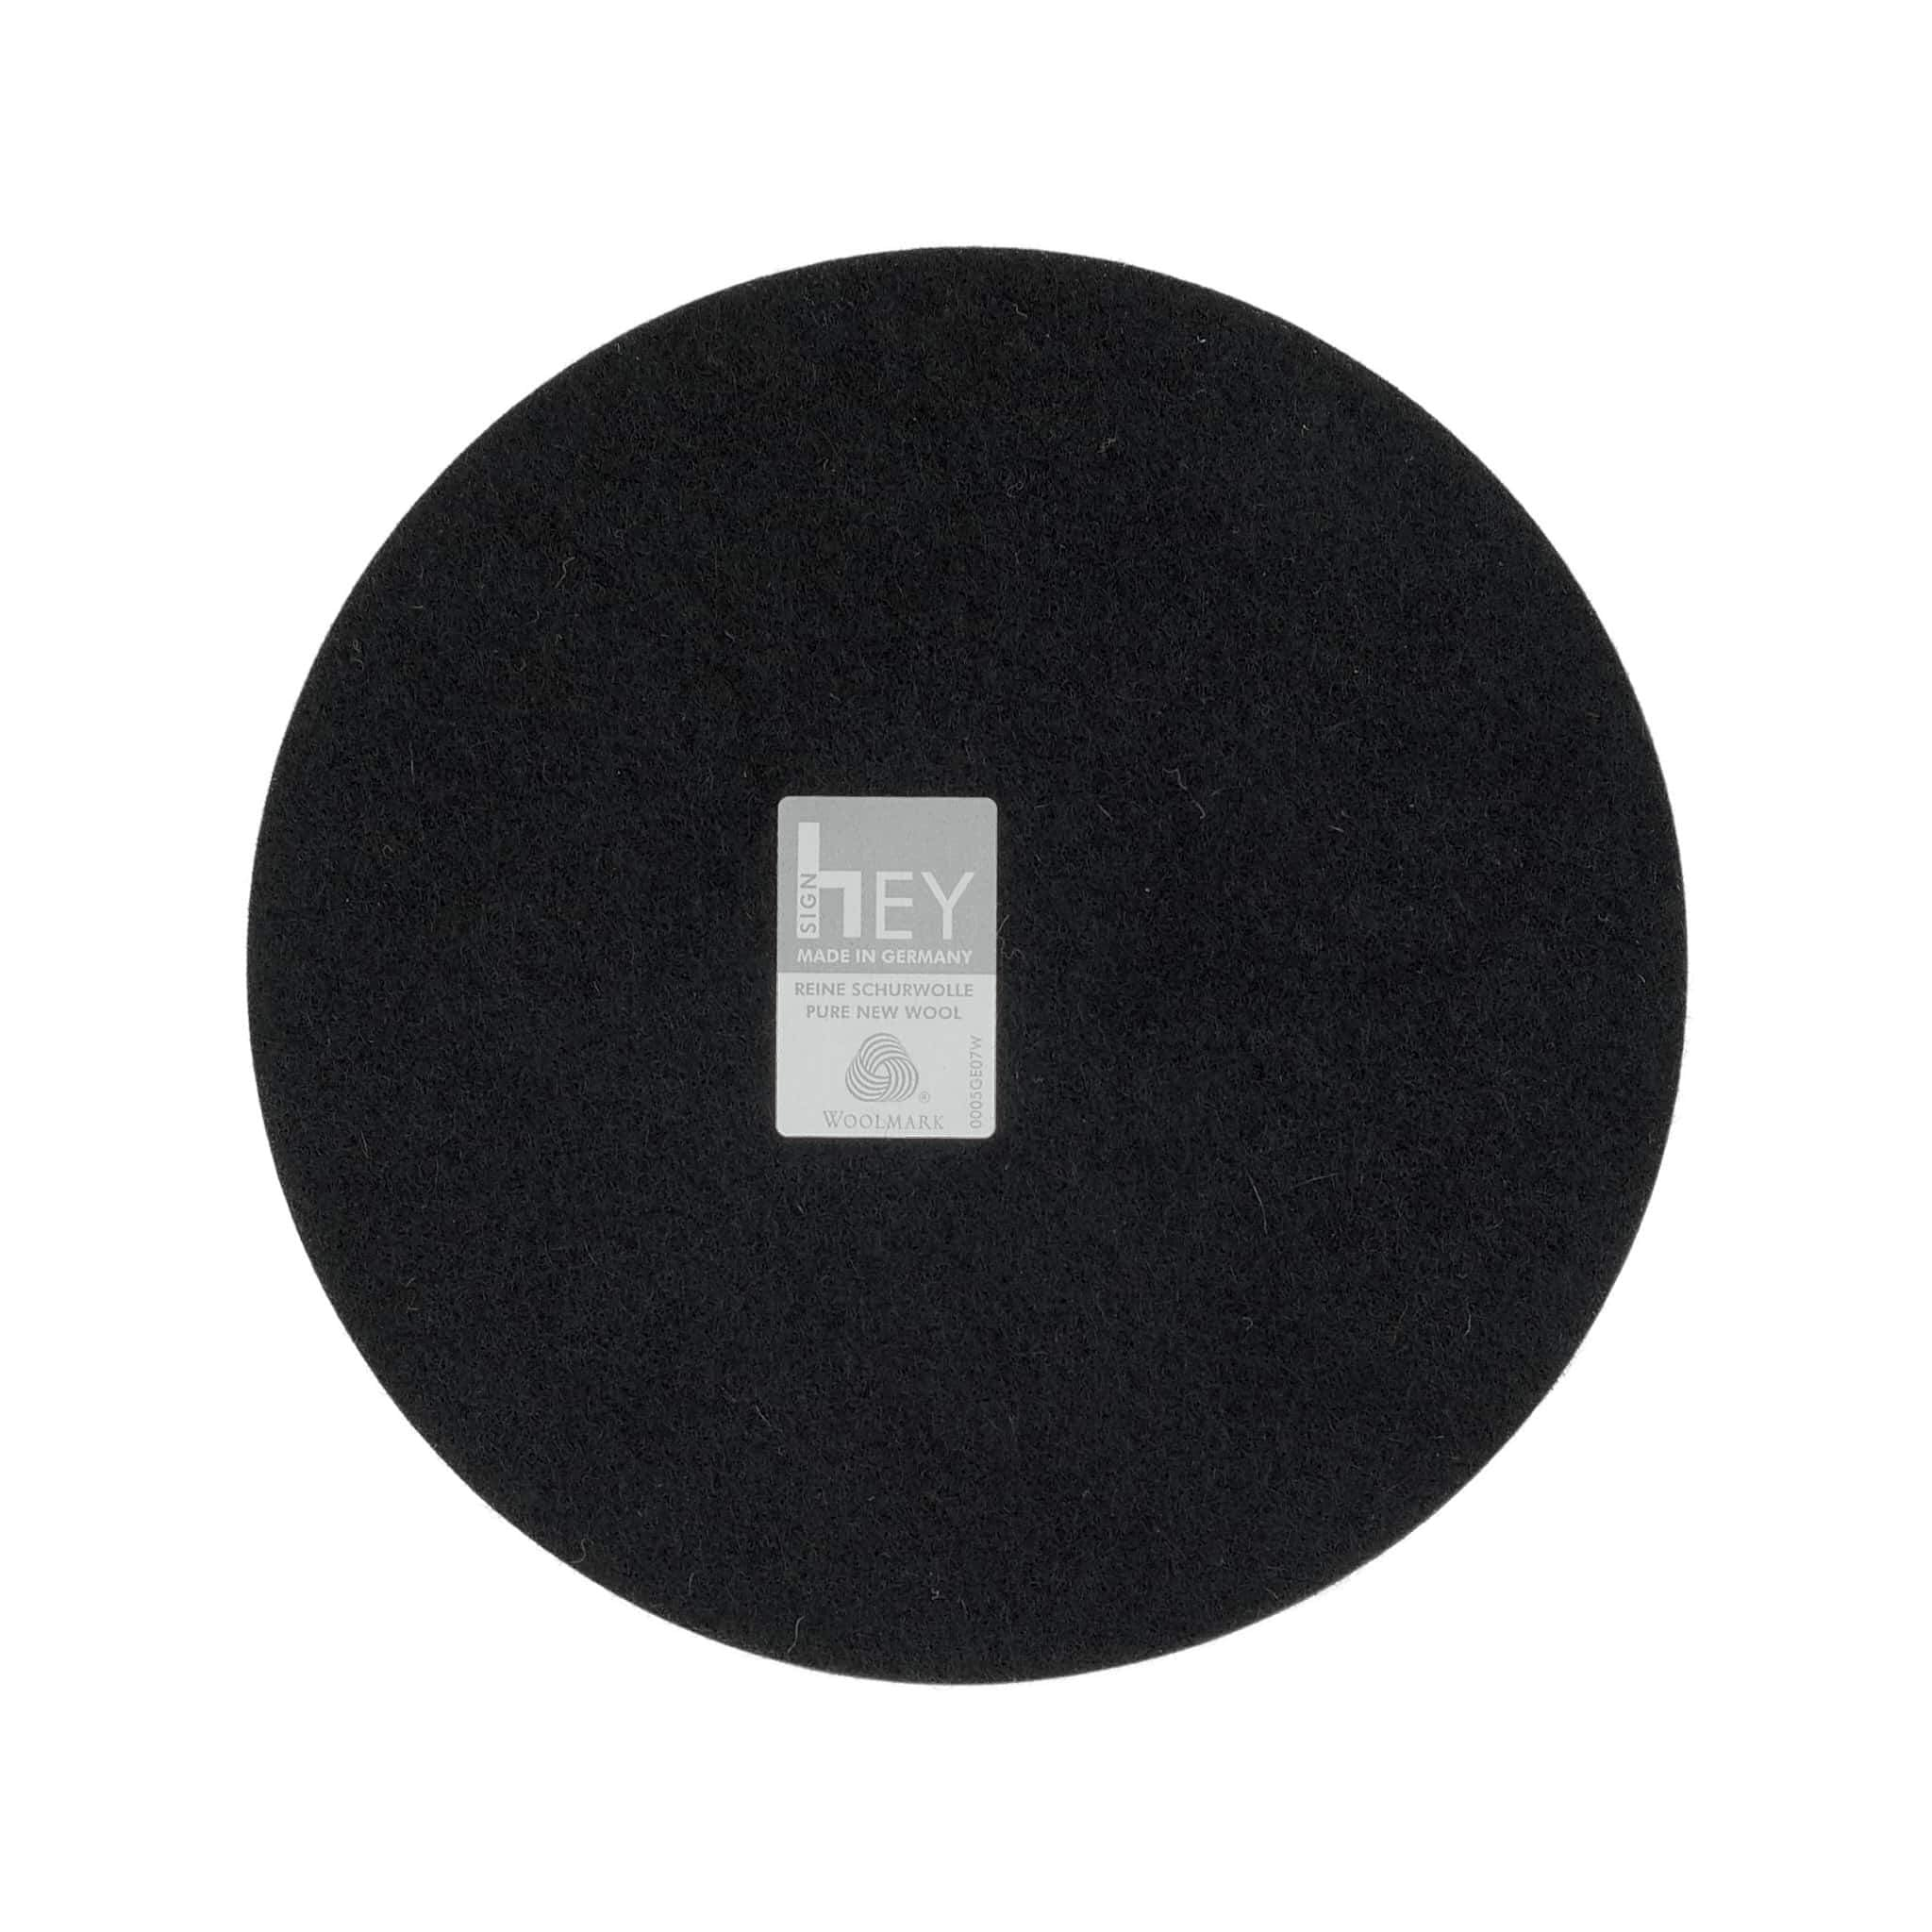 Round Felt Trivet in Black by Hey-Sign 300152002 looking at Back